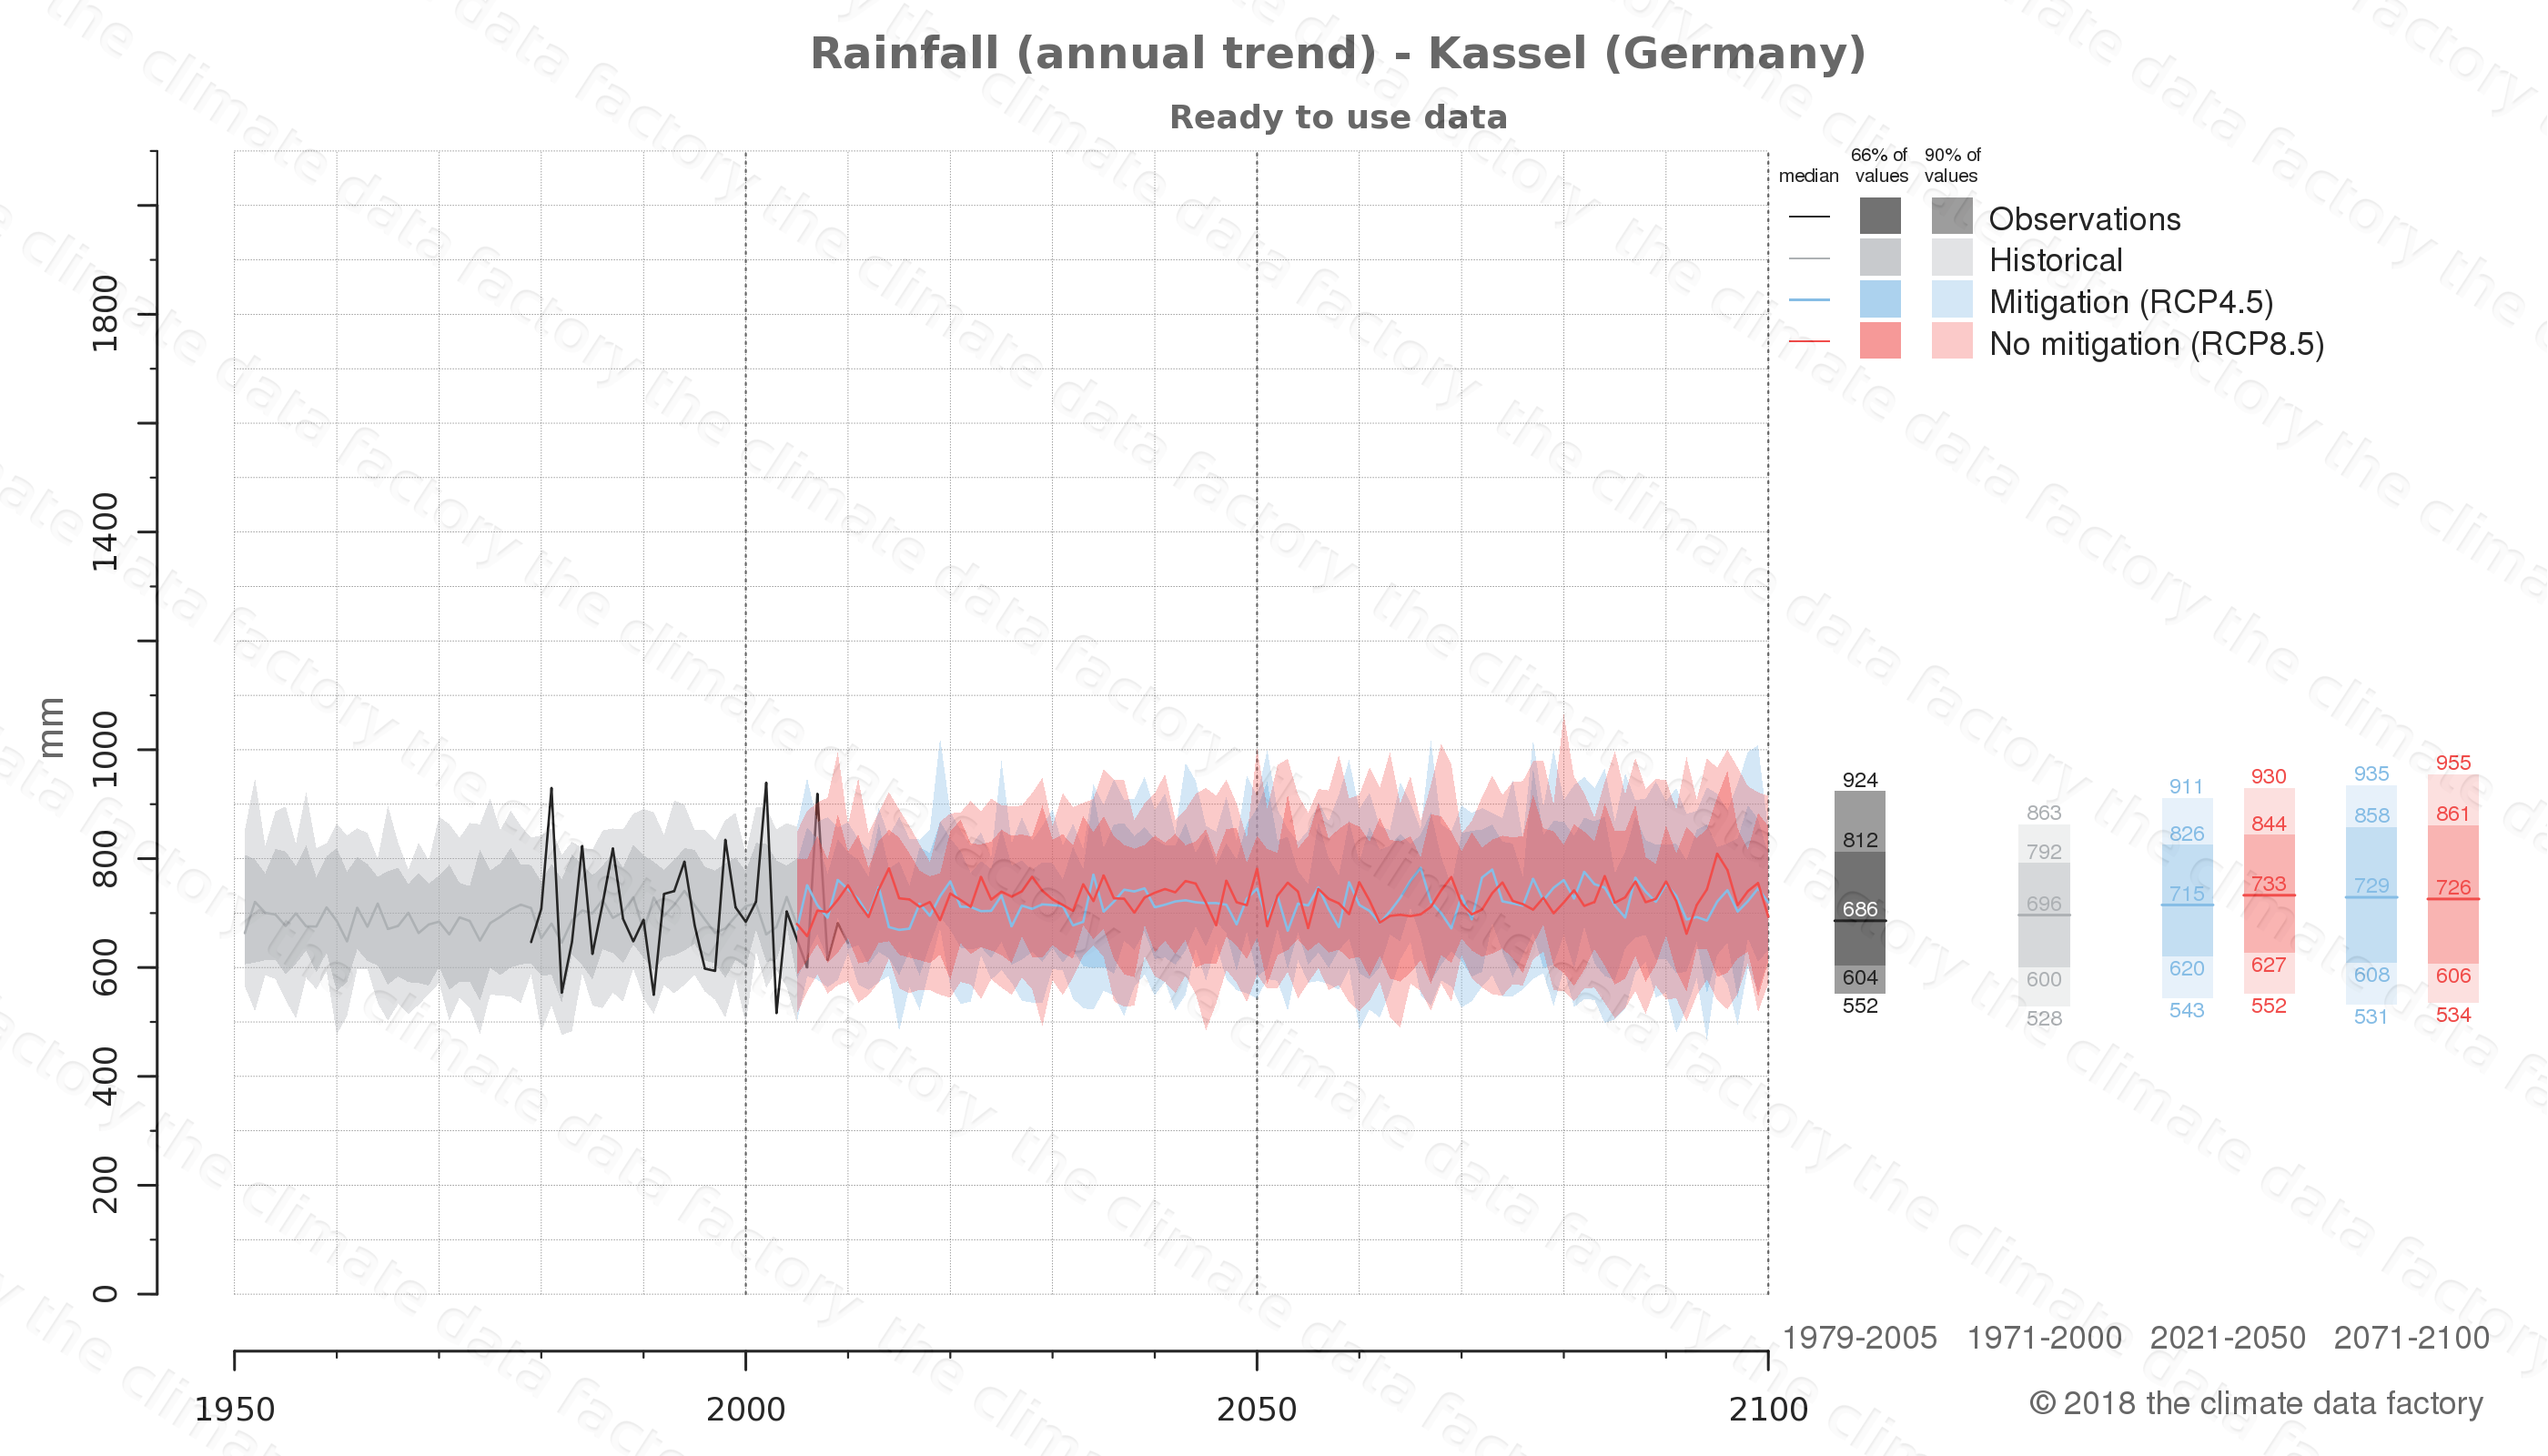 climate change data policy adaptation climate graph city data rainfall kassel germany